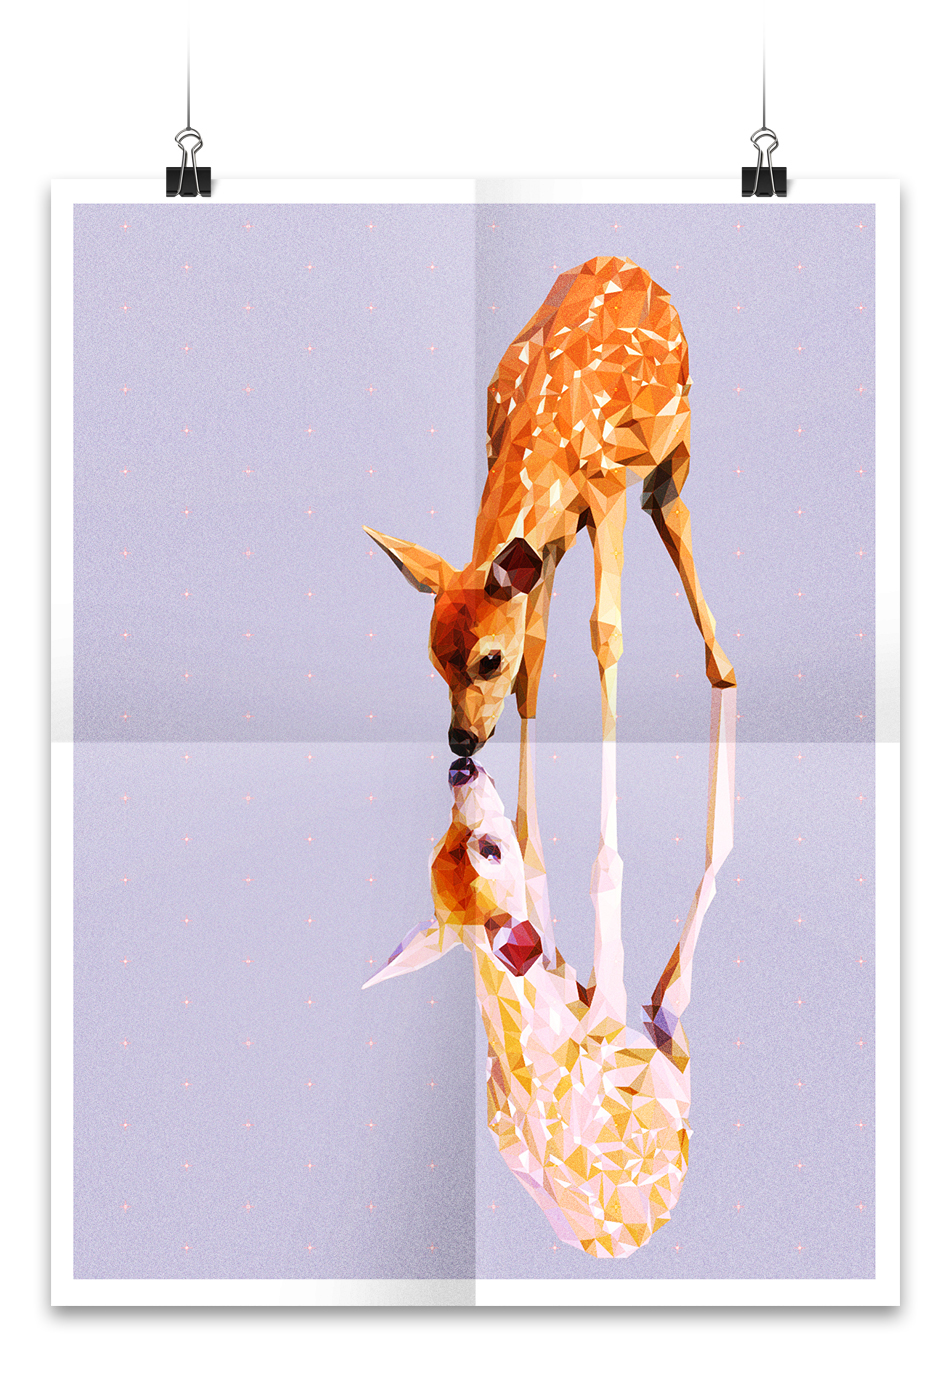 Kuo Cheng Liao, Oh Dear Deer